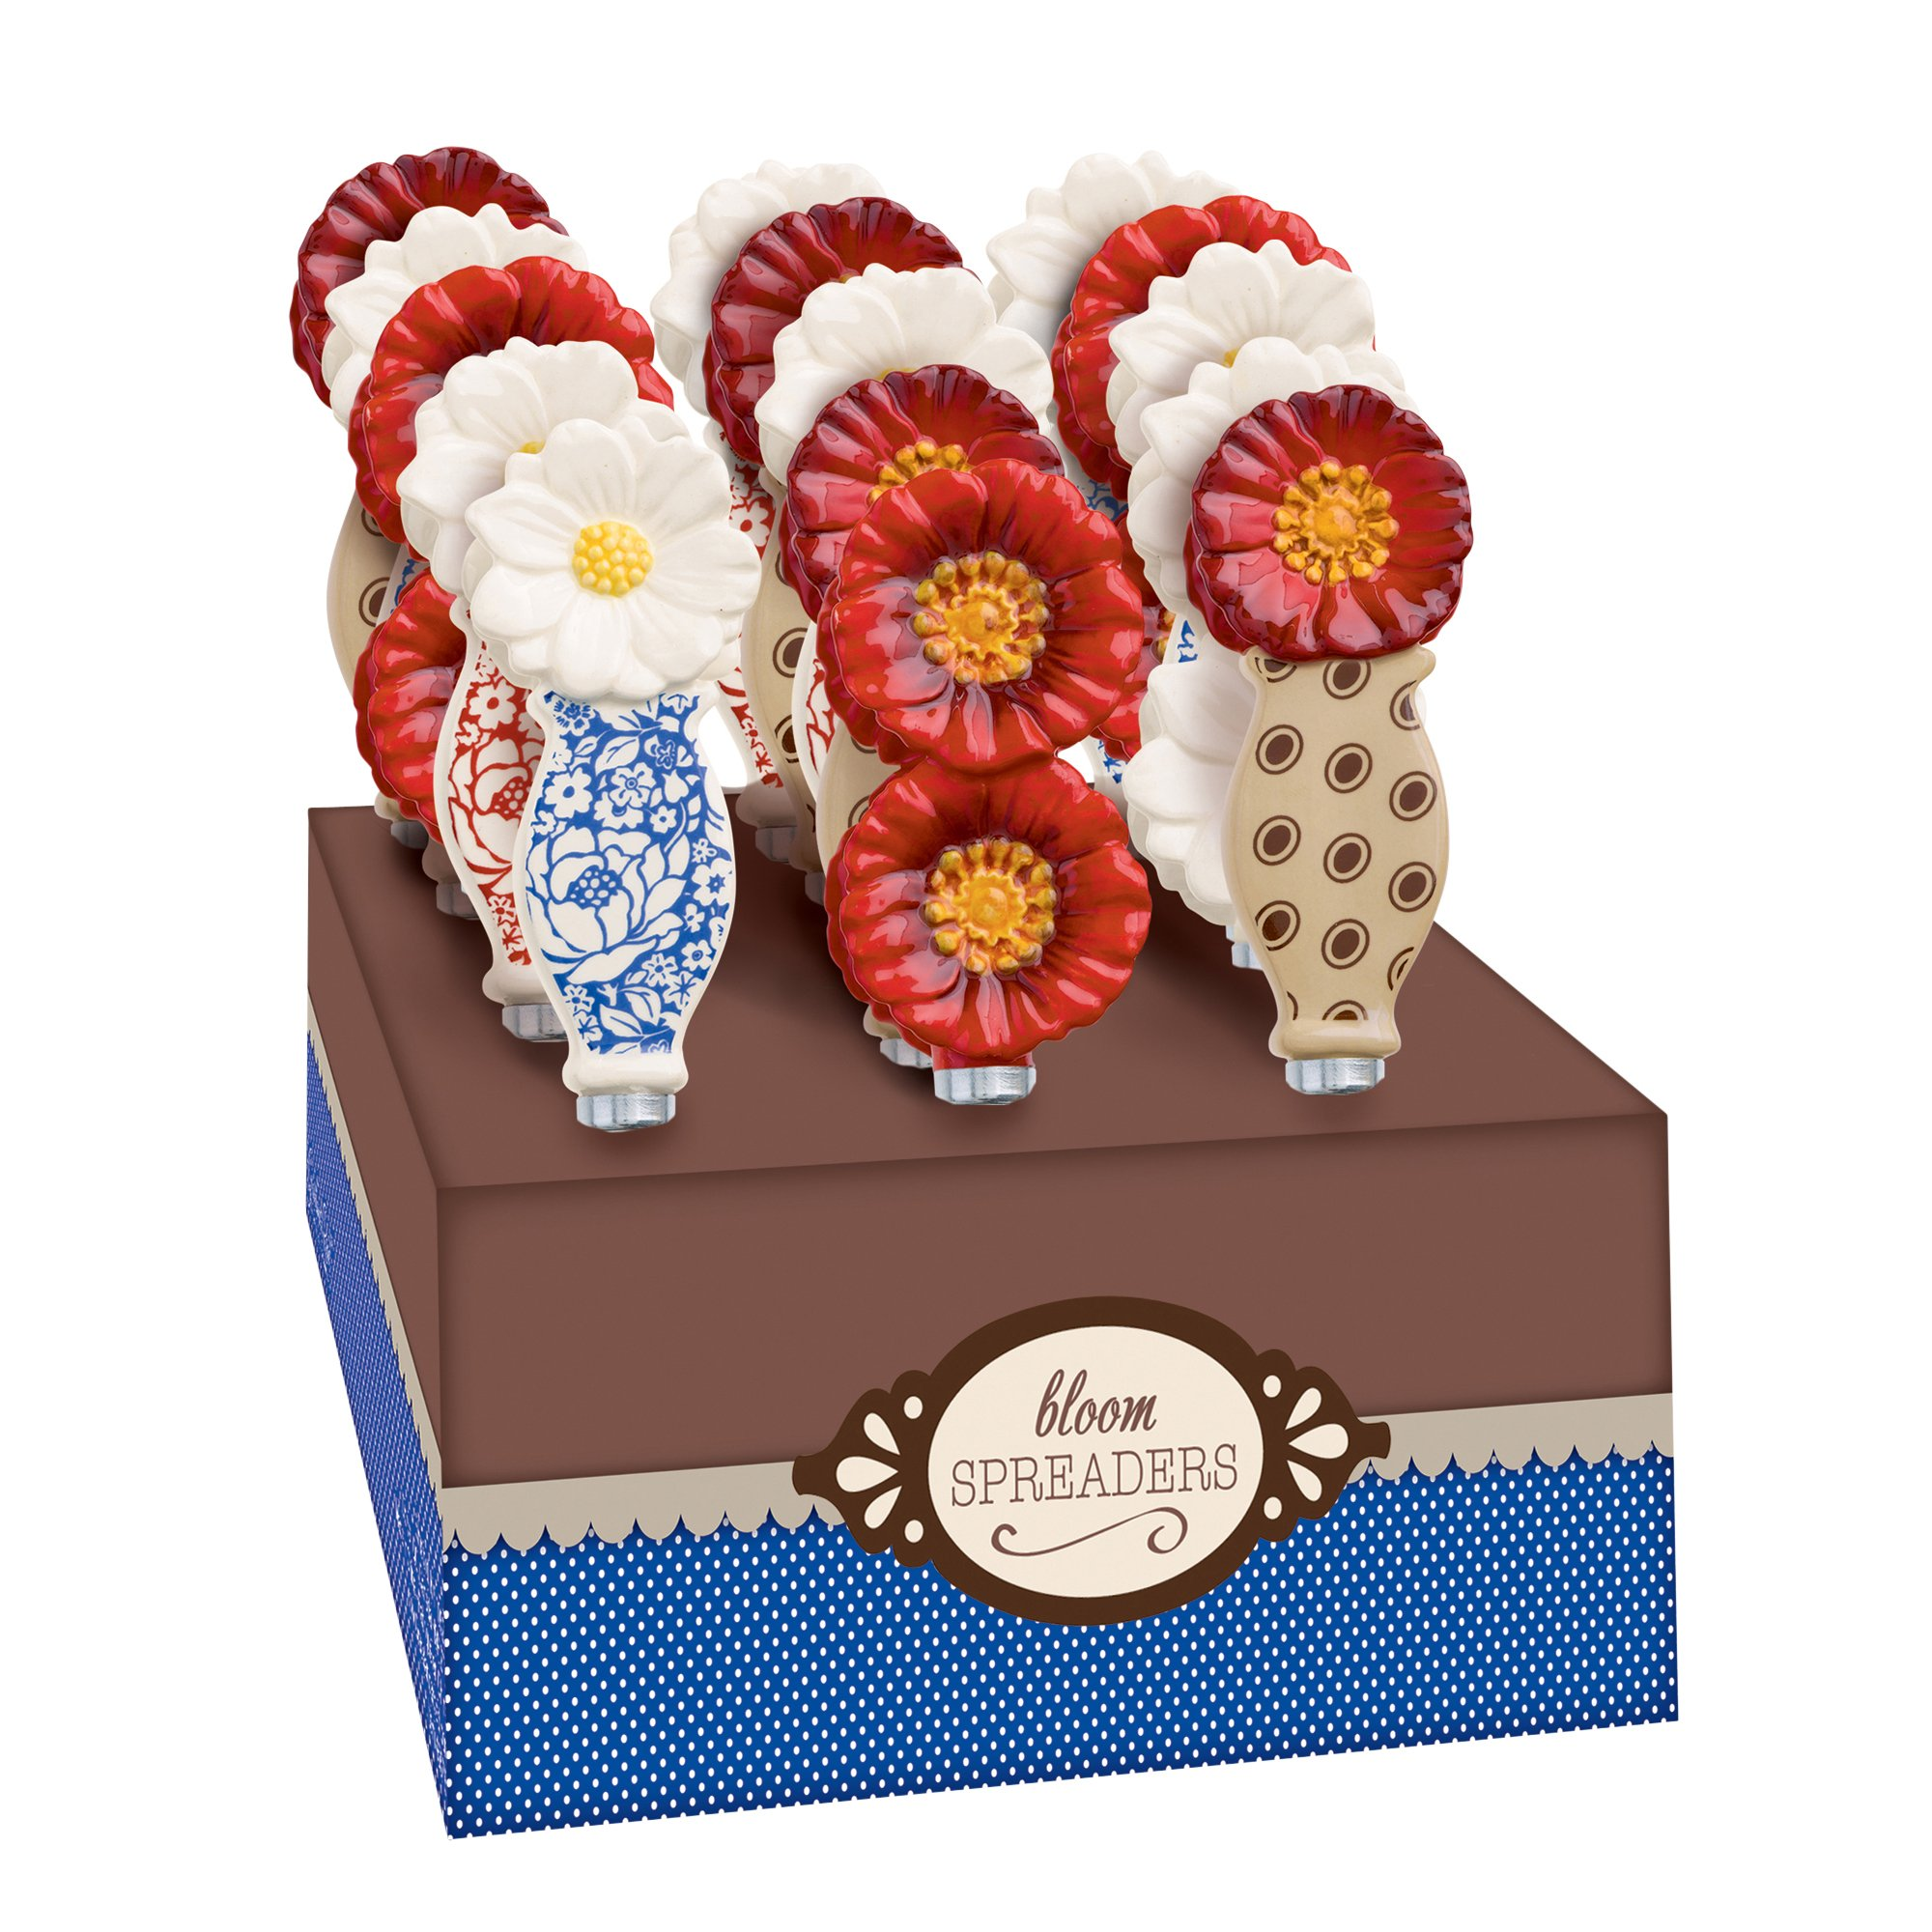 Grasslands Road American Bloom Ceramic Floral Spreader, 6-Inch, Assortment, Set of 15 by Grasslands Road